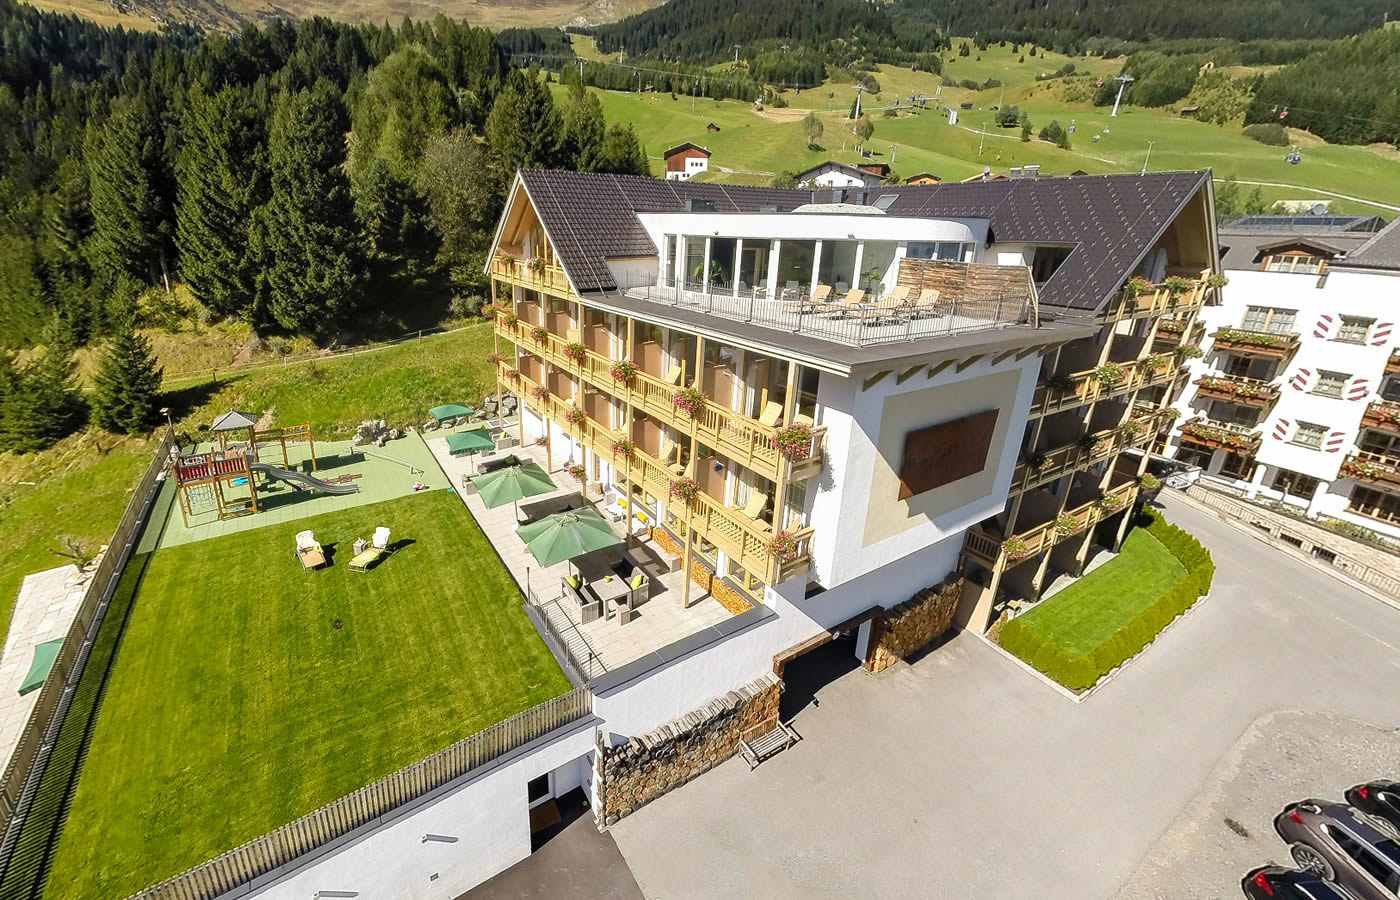 Natürlich. Hotel in Fiss - Südansicht Sommer - Urlaub in Tirol.